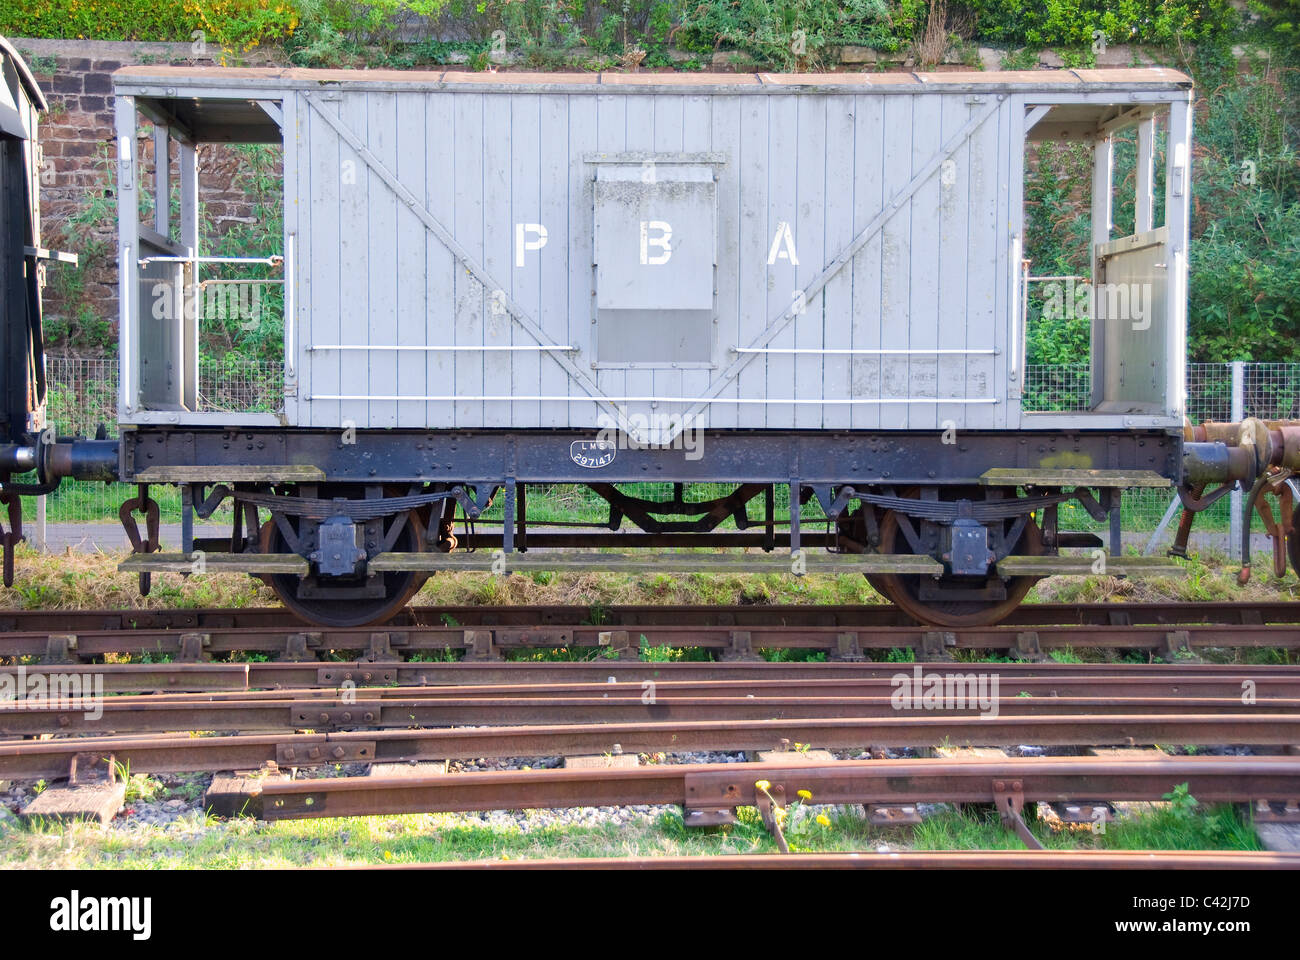 Historic railway waggon, PBA Port of Bristol Authority, Bristol harbour, England, UK - Stock Image